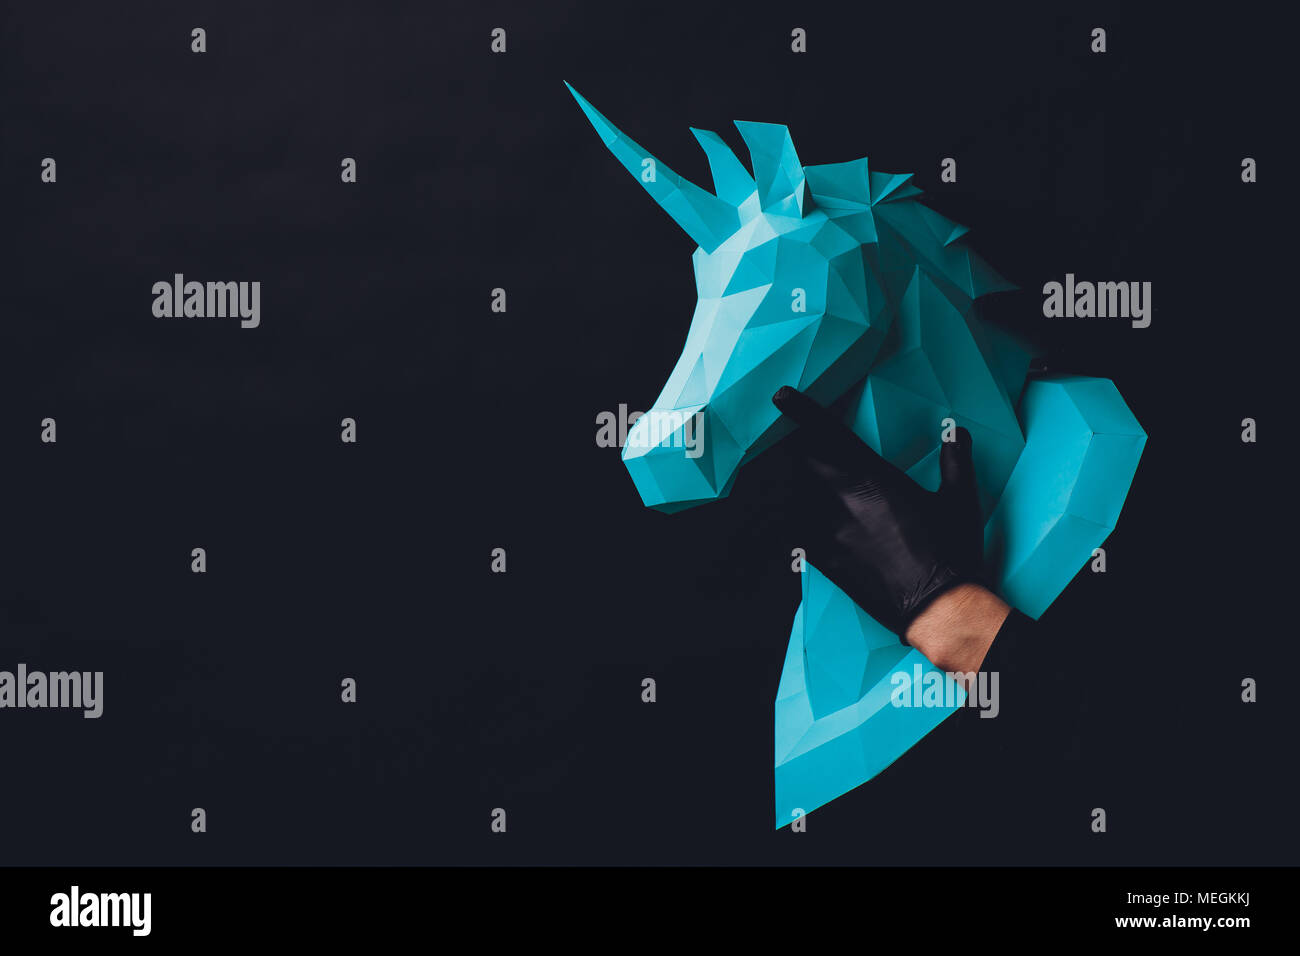 Unicorn head paper on a black background. Hands in black gloves hold a turquoise Unicorn. Copy space - Stock Image